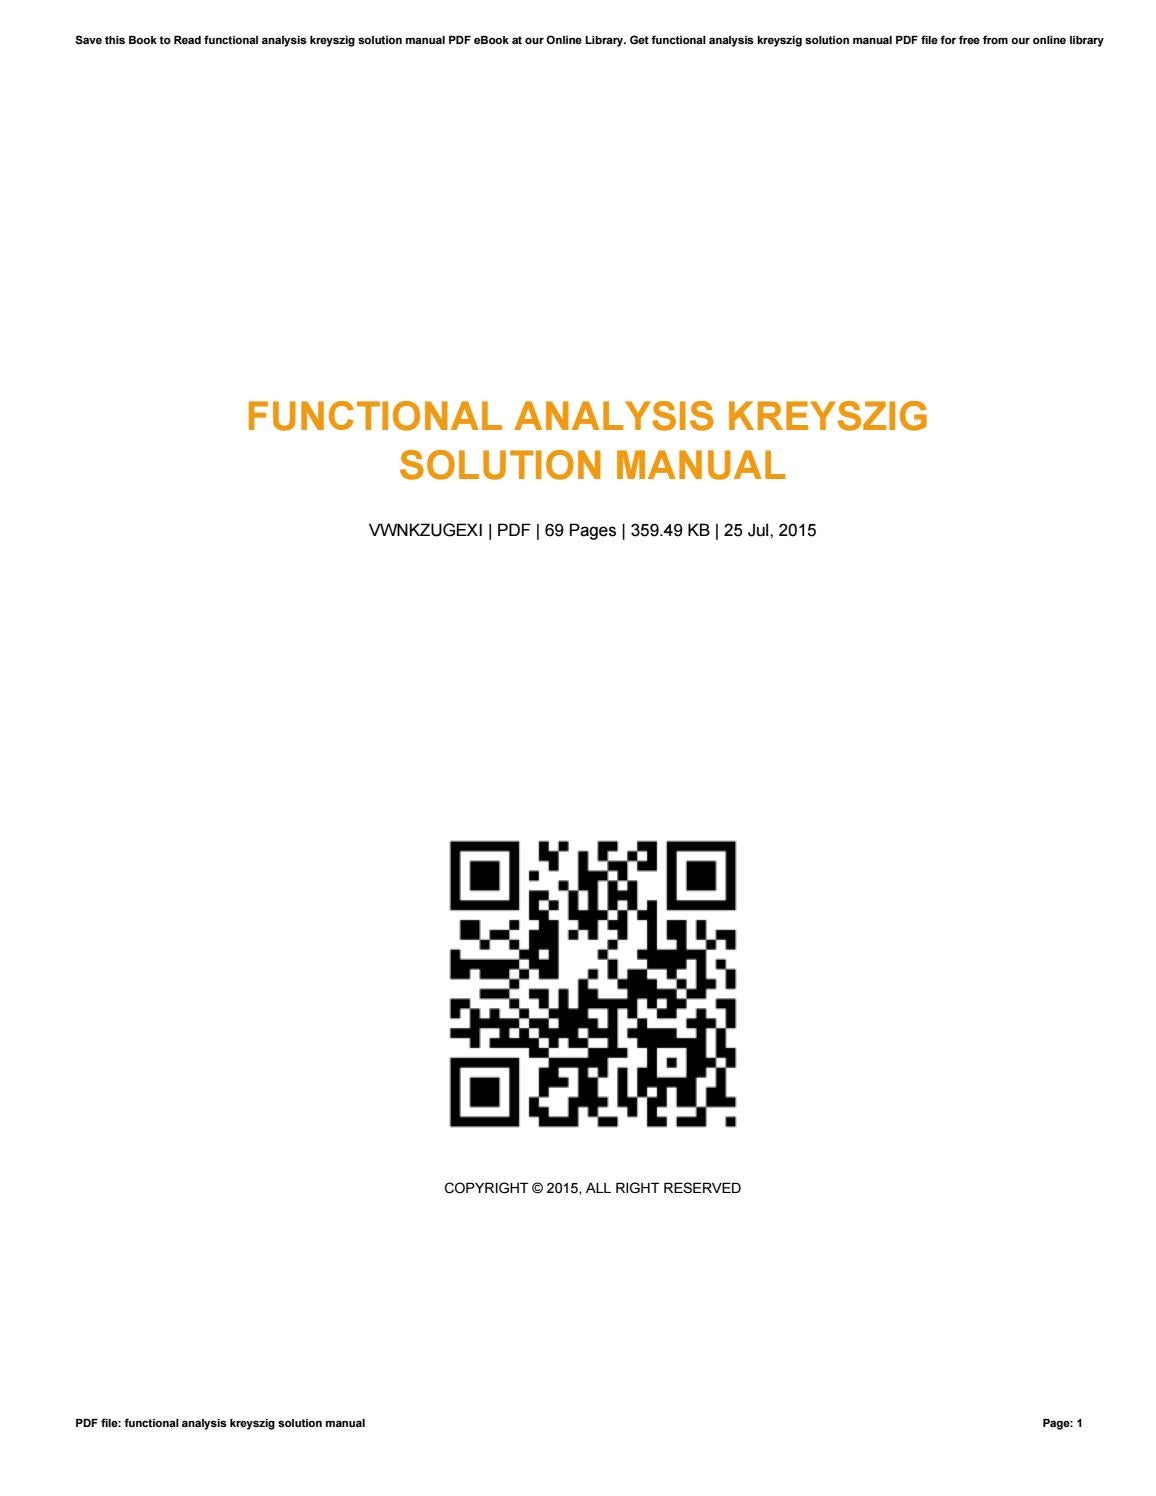 Functional analysis kreyszig solution manual by EnriqueCabezas3046 - issuu